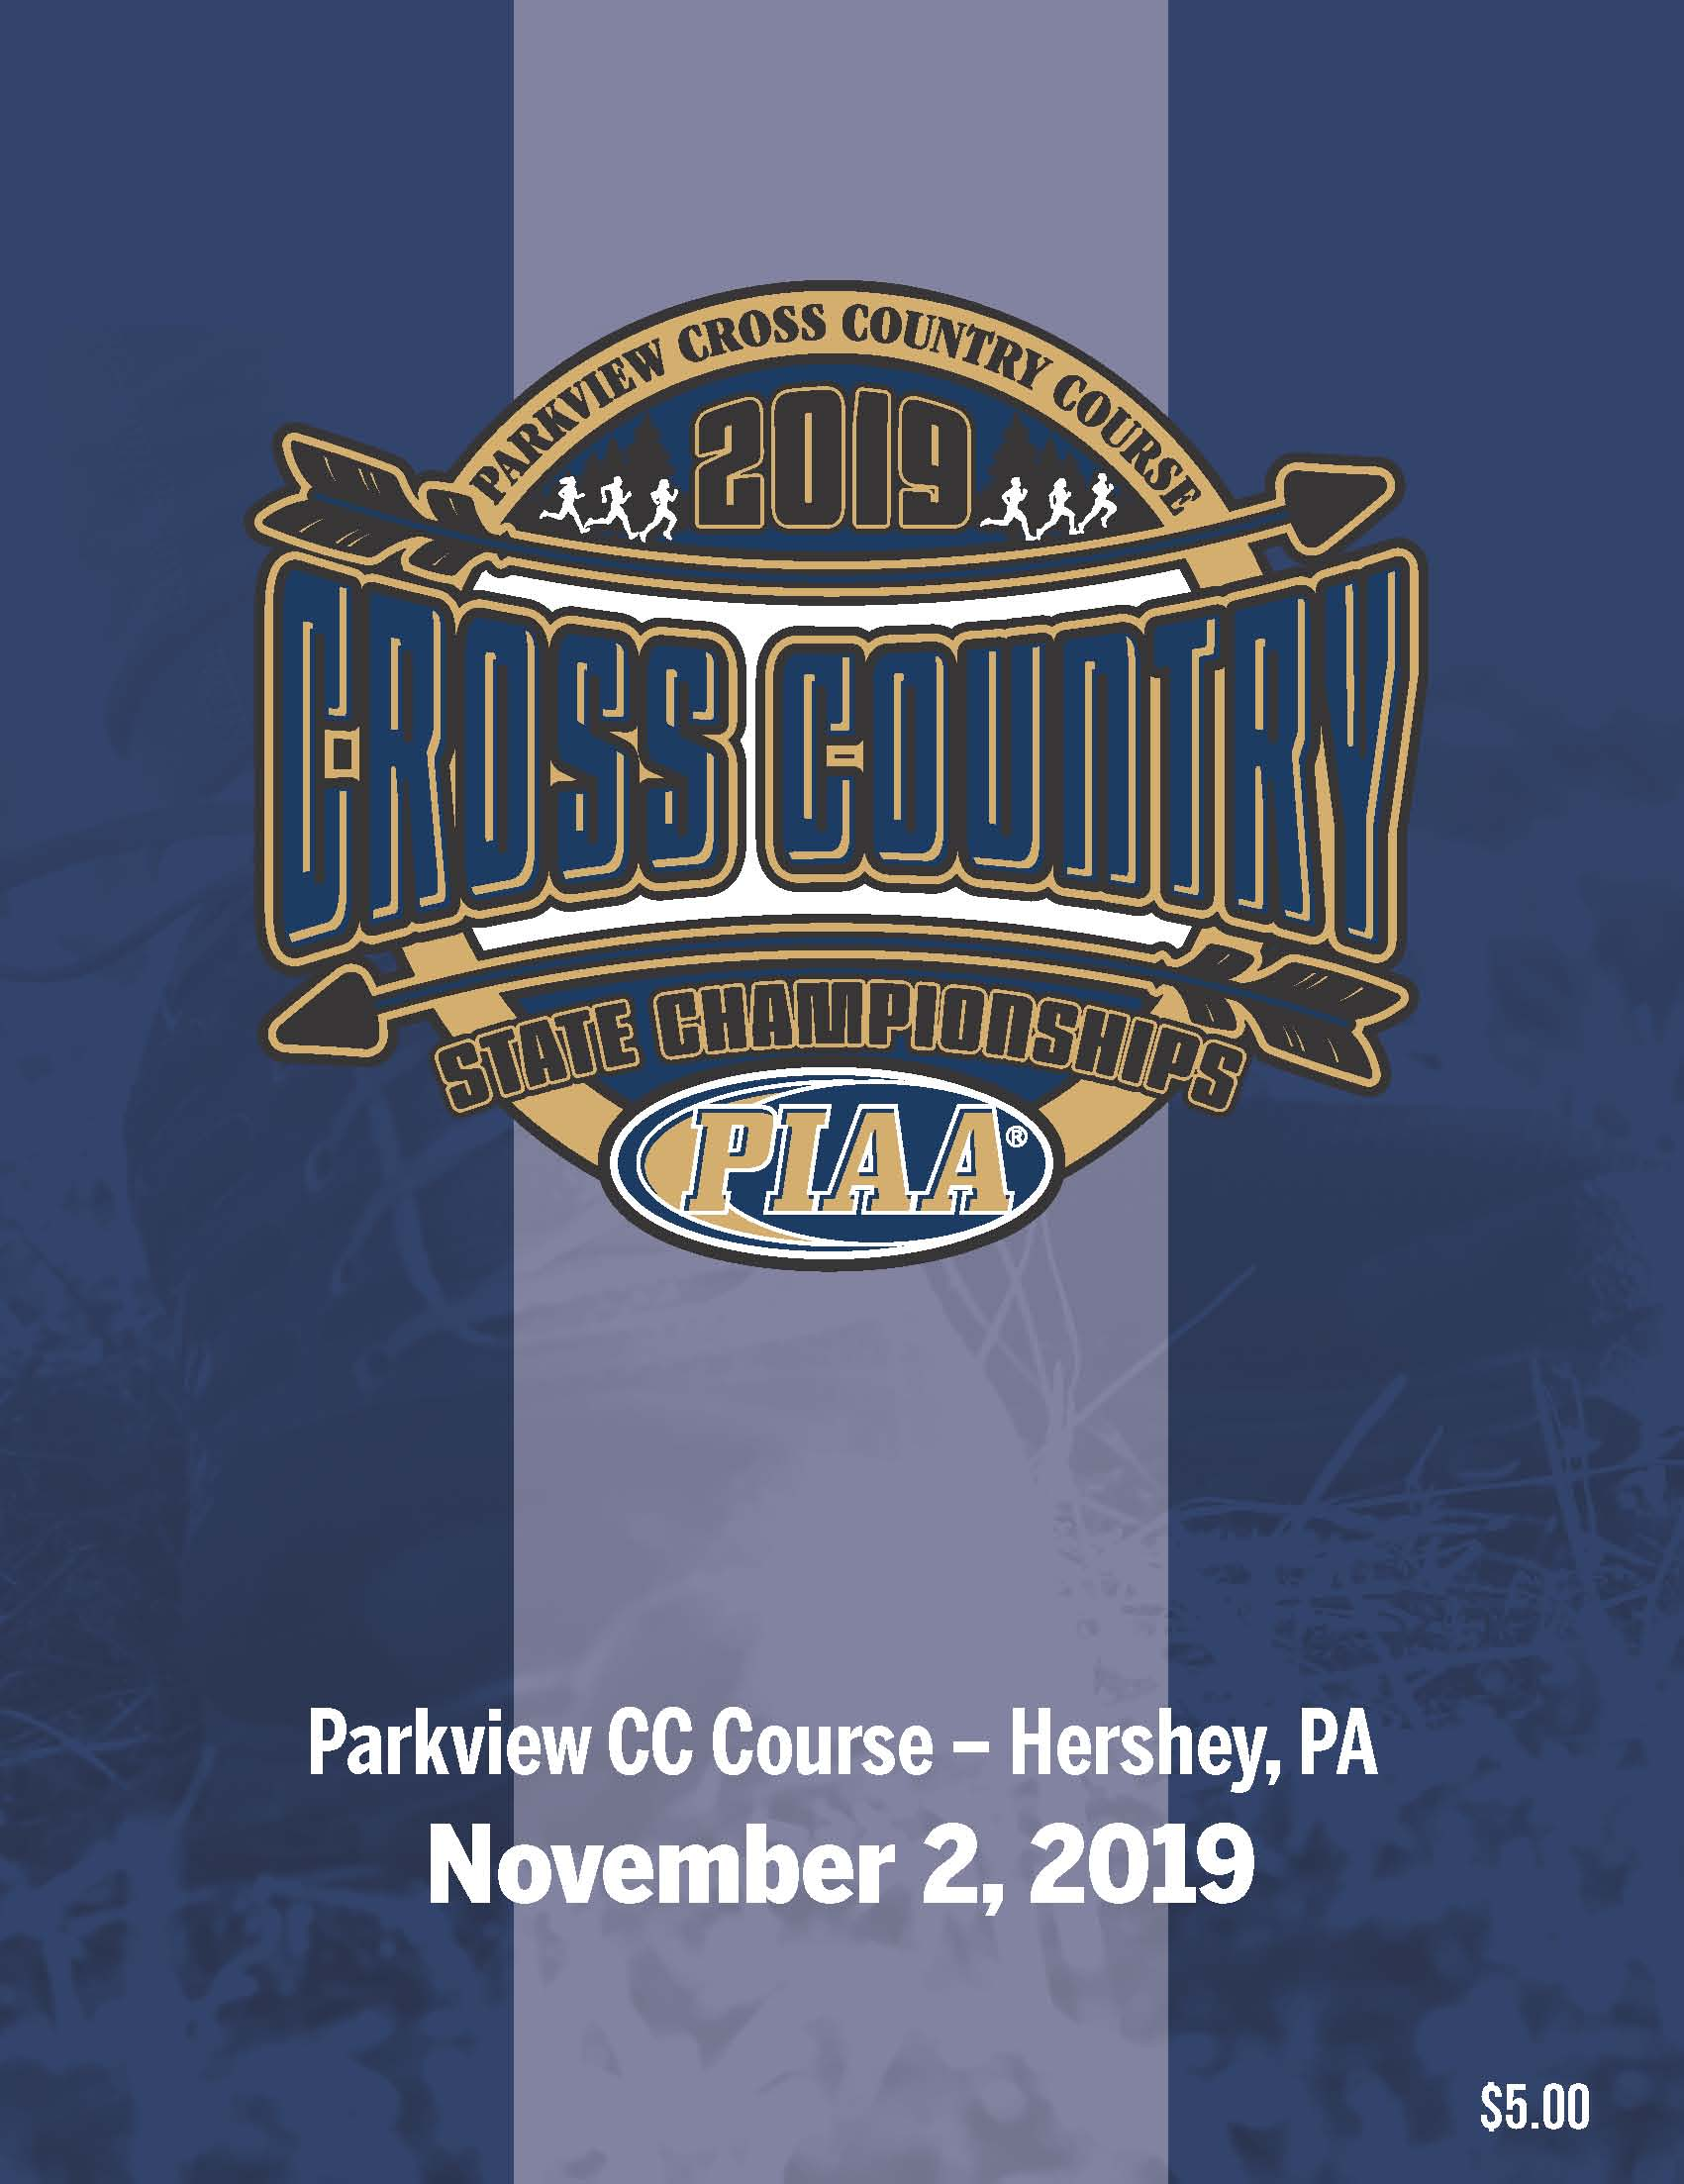 2018 Cross Country Championship Program